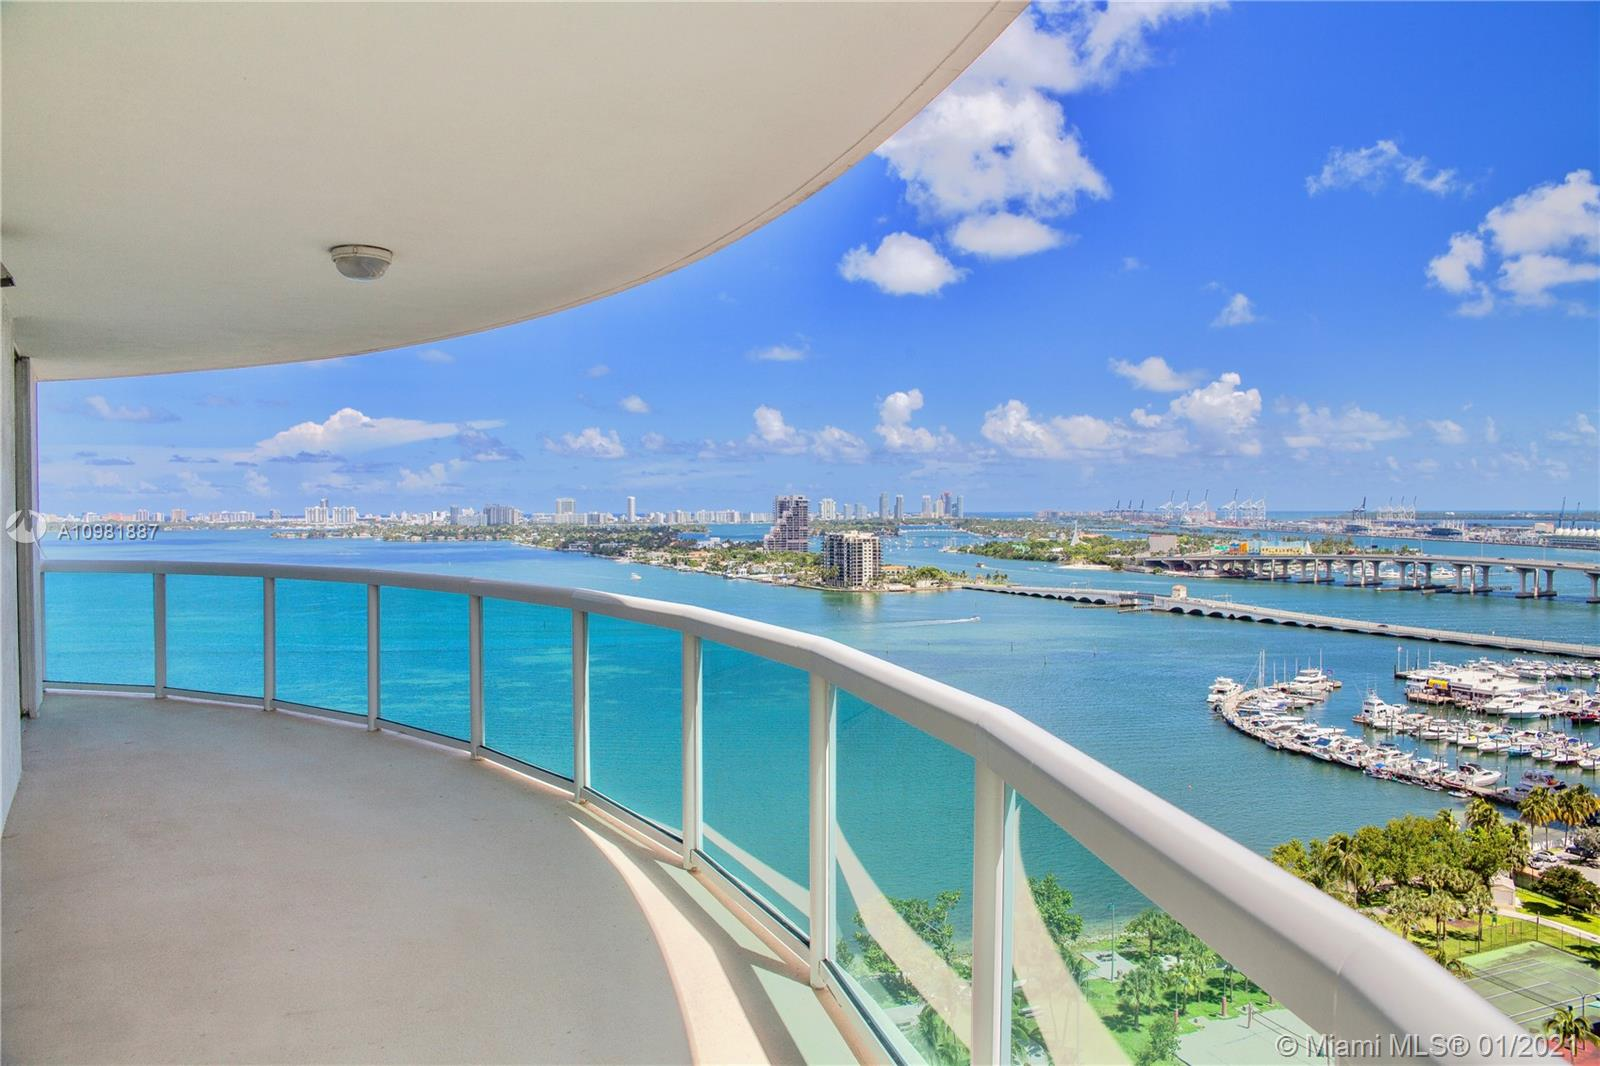 IDEAL VIEWS FROM THIS 21ST FLOOR. GREAT AND  VERY SPACIOUS APARTMENT FACING THE BAY.  THIS CORNER UNIT HAS AMPLE SPACE AND IS LOCATED IN VERY DESIRED 1800 CLUB BUILDING. FANTASTIC LOCATION VERY CLOSE TO WYNWOOD, DESIGN DISTRICT, DOWNTOWN AND MIAMI BEACH. AMENITIES INCLUDE GYM, POOL, SHOPS, AND AN INCREDIBLE PARK JUST IN FRONT WITH VOLLEYBALL COURTS, TENNIS AND MUCH MORE. VERY EASY TO SEE,